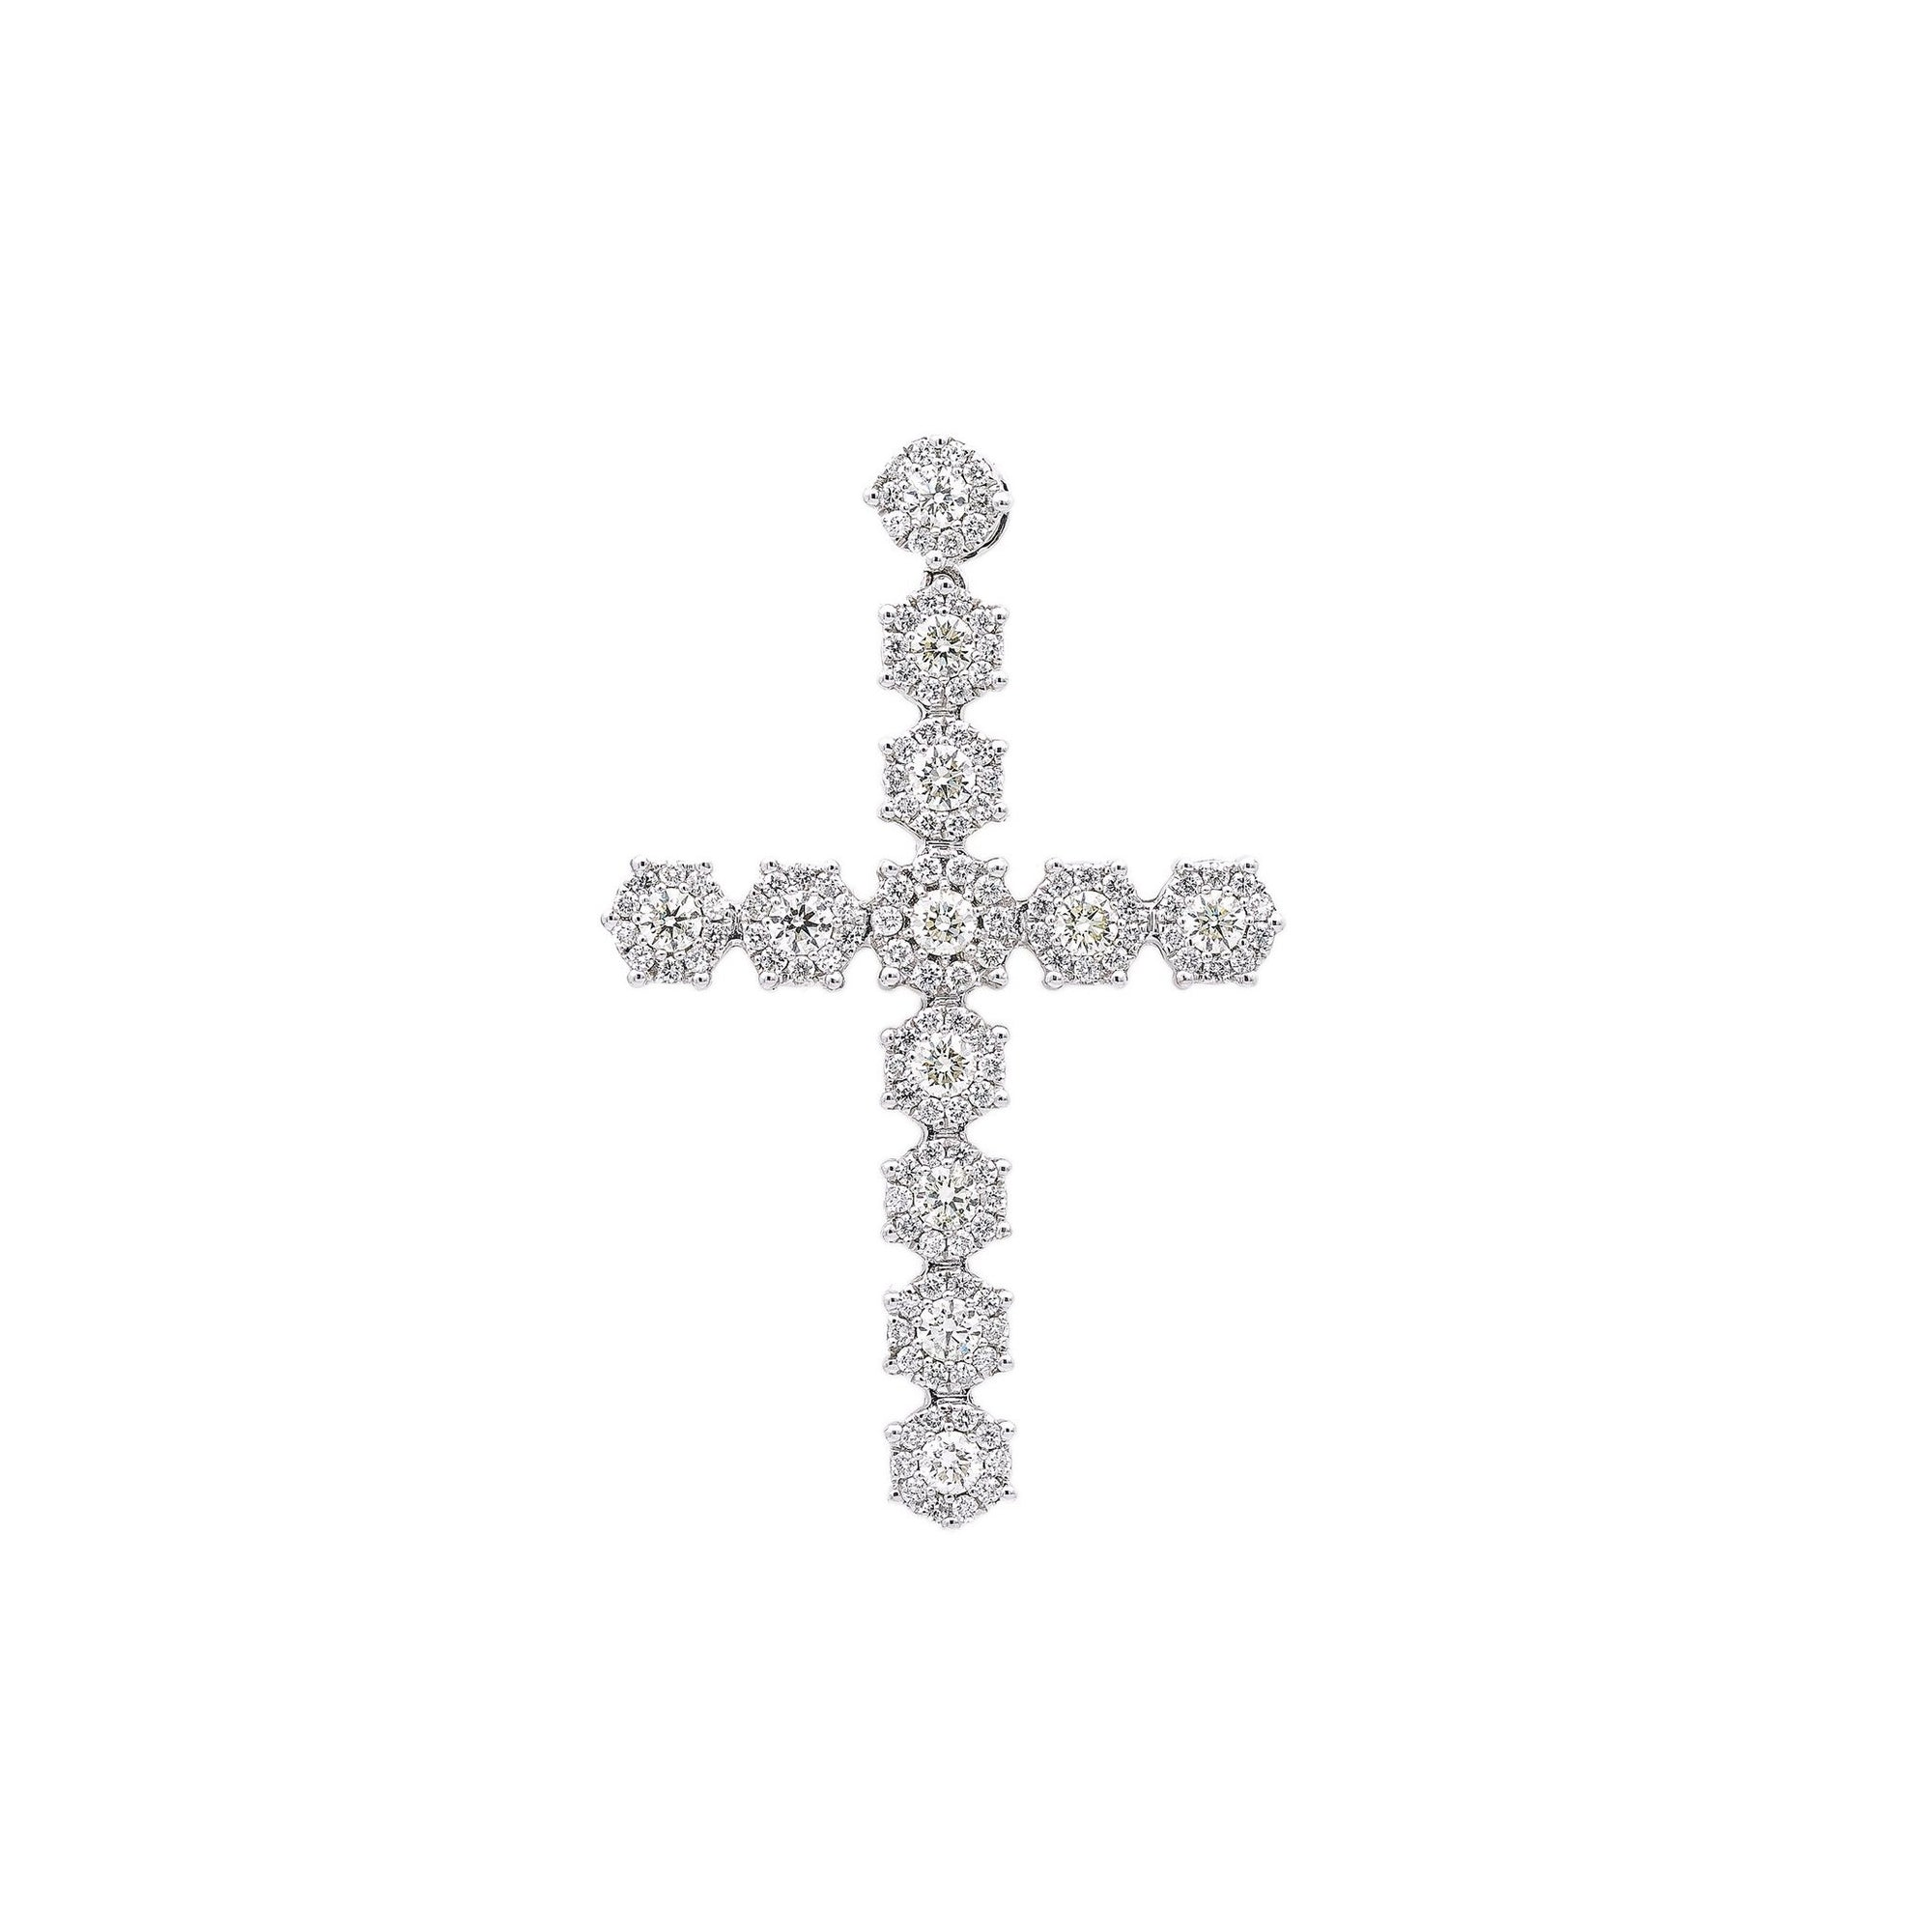 Unisex 14K White Gold Cross Pendant with 5.15 CT Diamonds